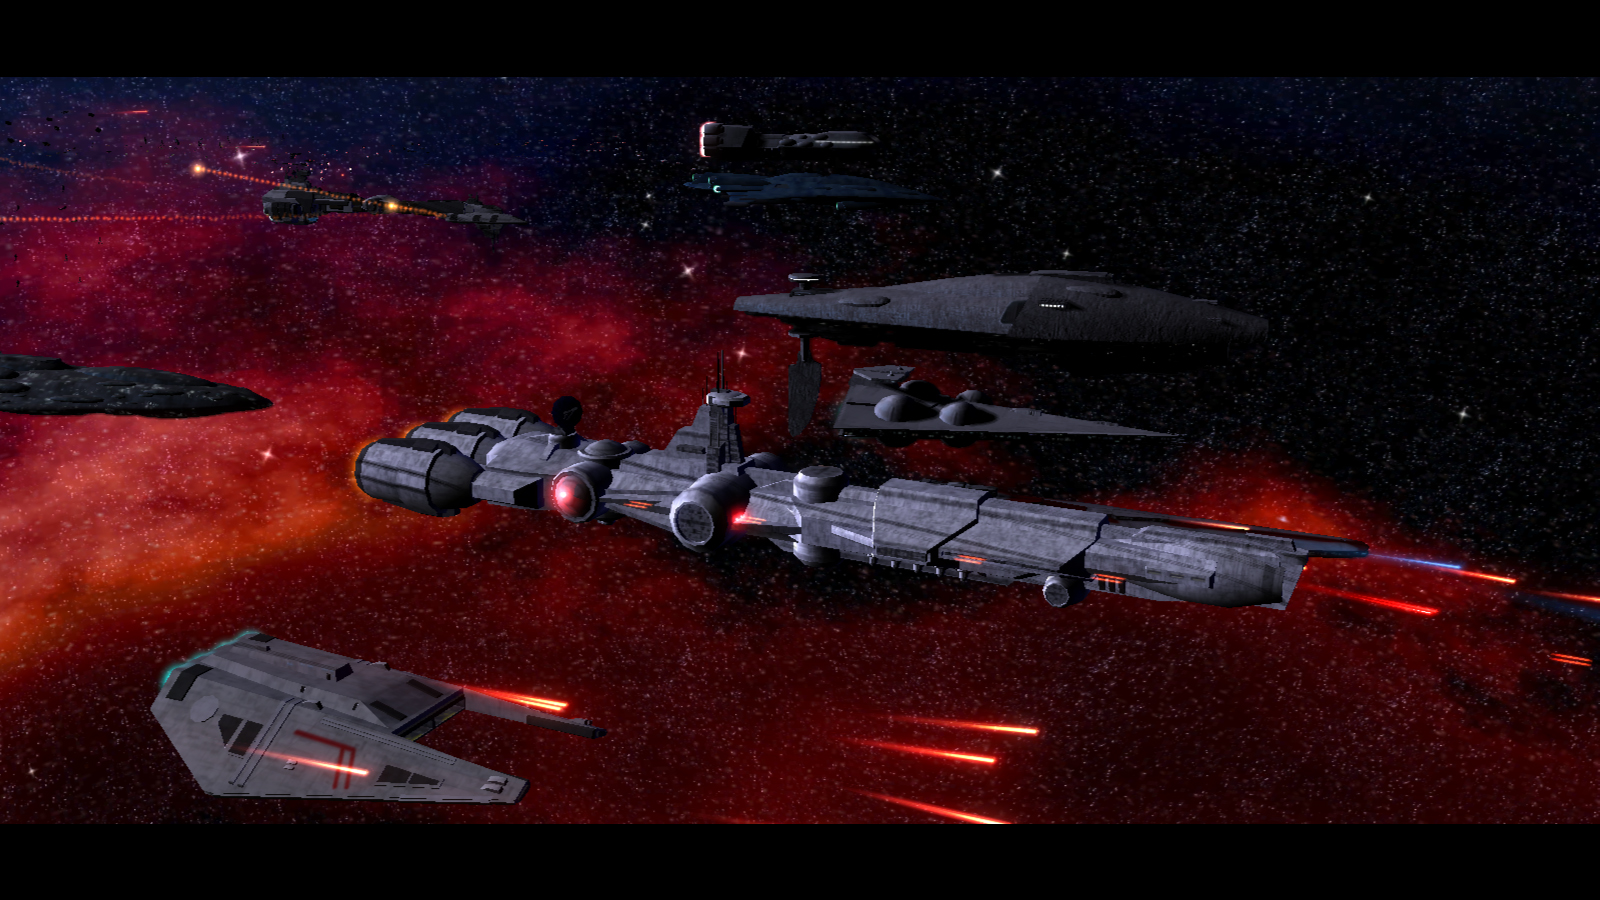 Mixed Species New Republic Fleet Image The New Jedi Order Njo Mod For Star Wars Empire At War Forces Of Corruption Mod Db